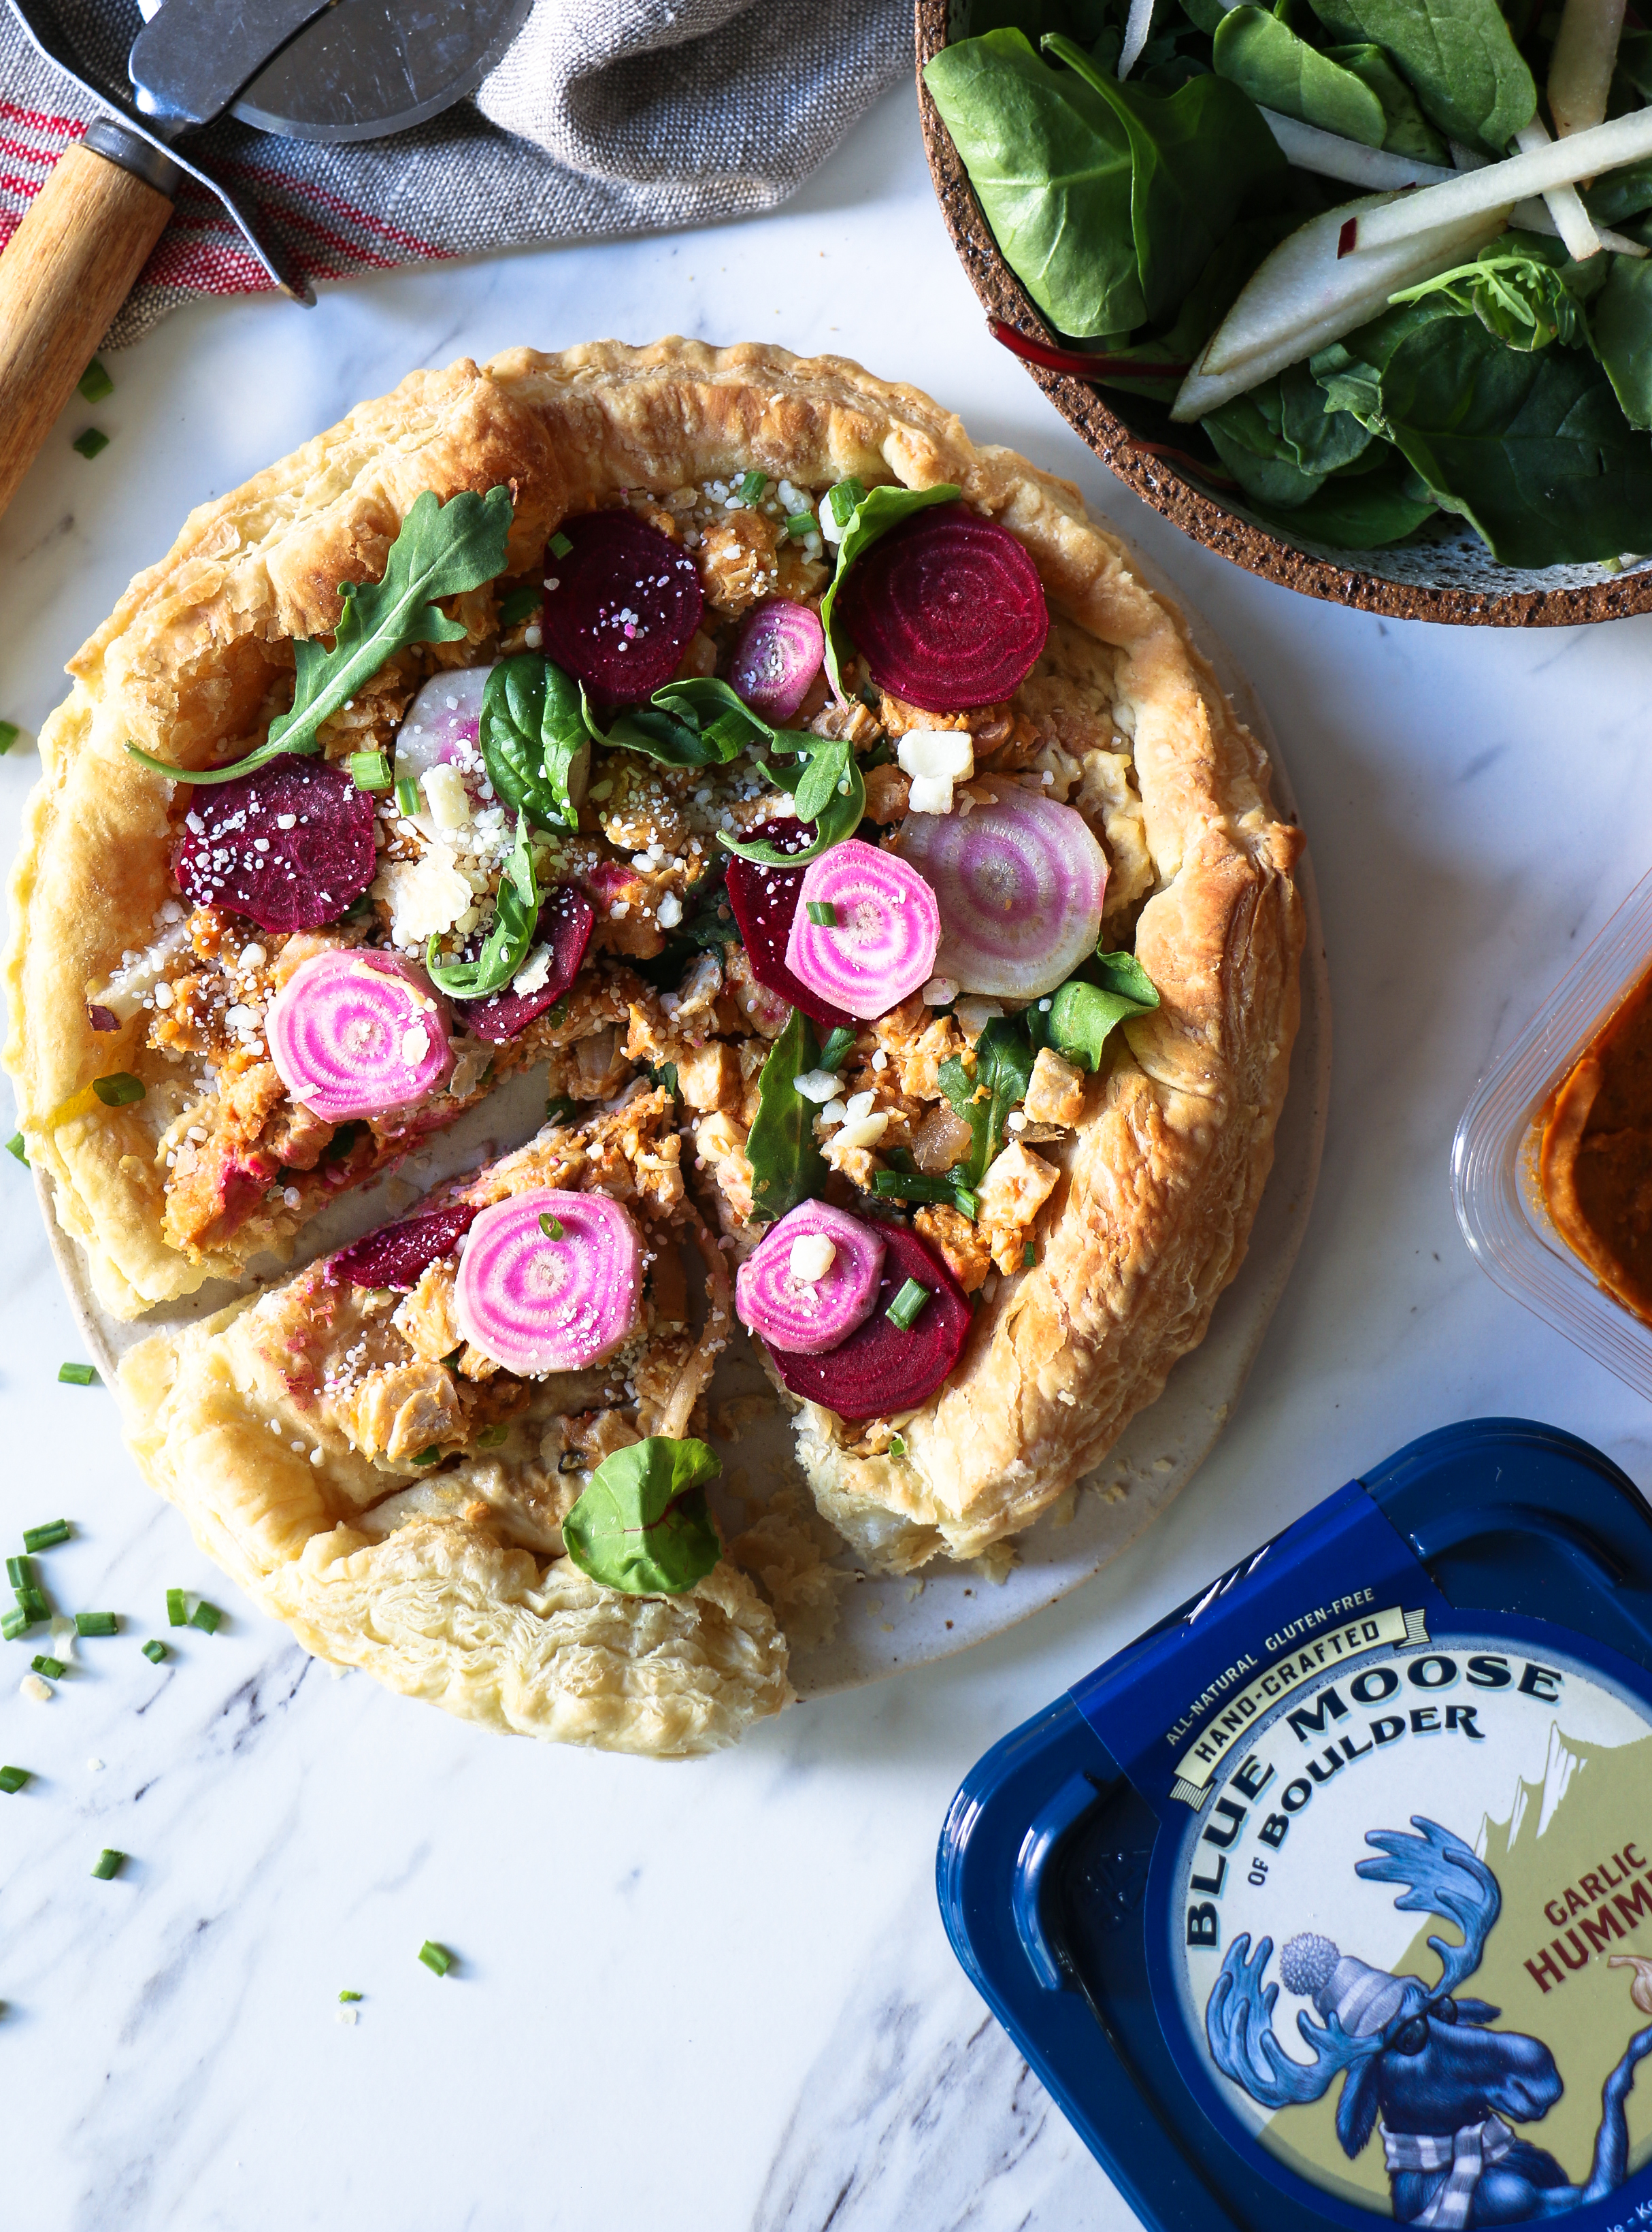 Fall tart- Greek Hummus Chicken with Beet and Pears Salad |foodfashionparty| #autumntart